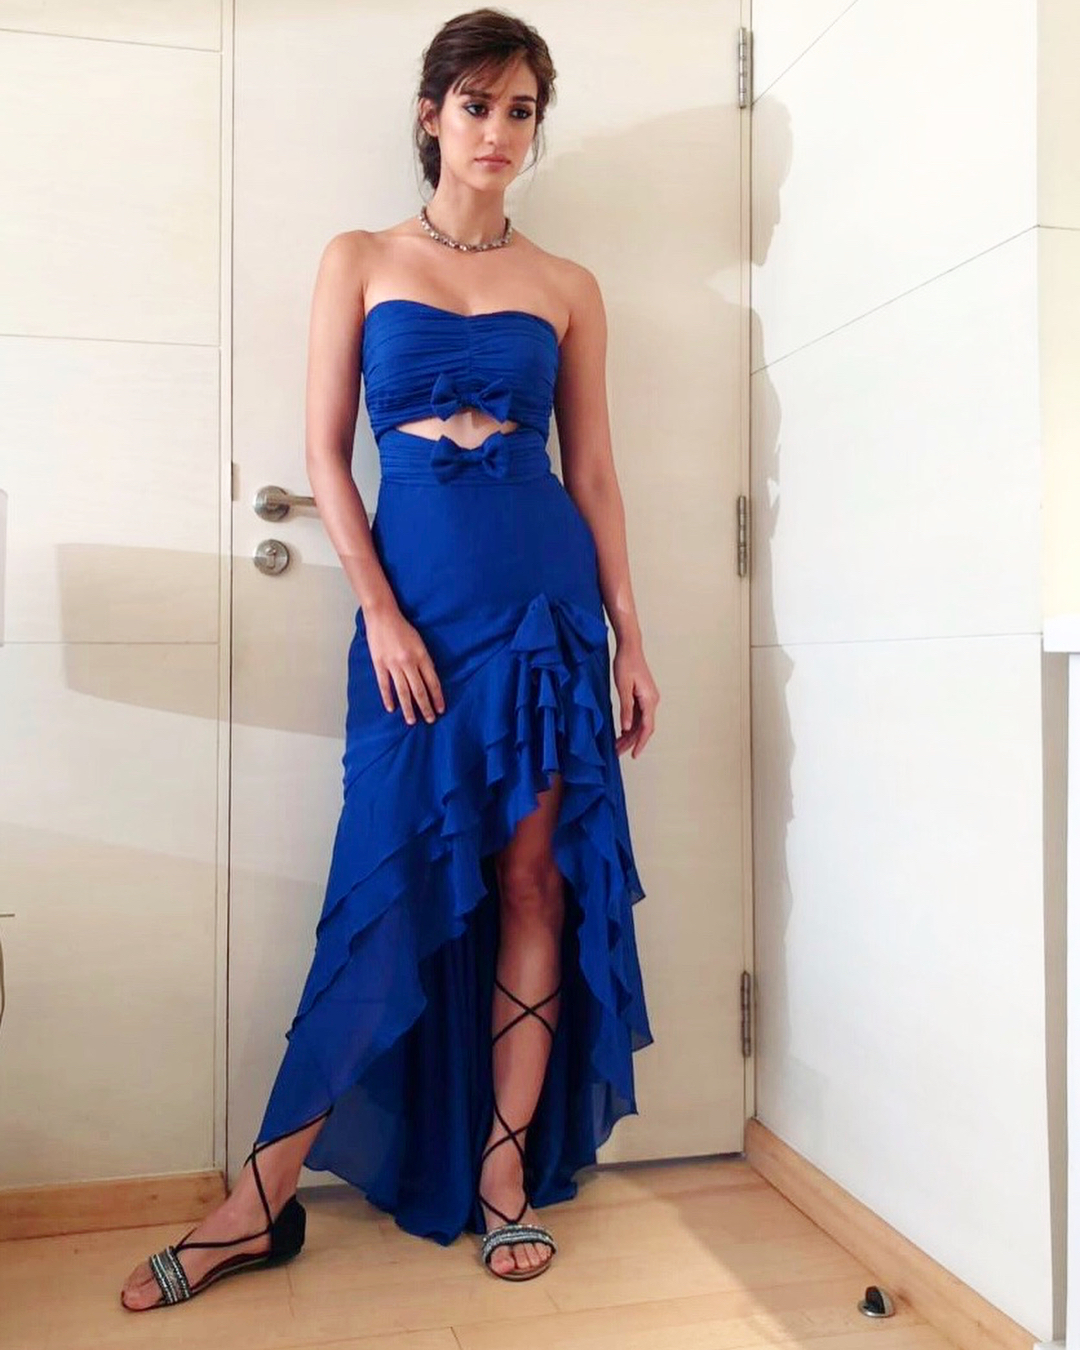 Disha Patani Hot in Blue Dress